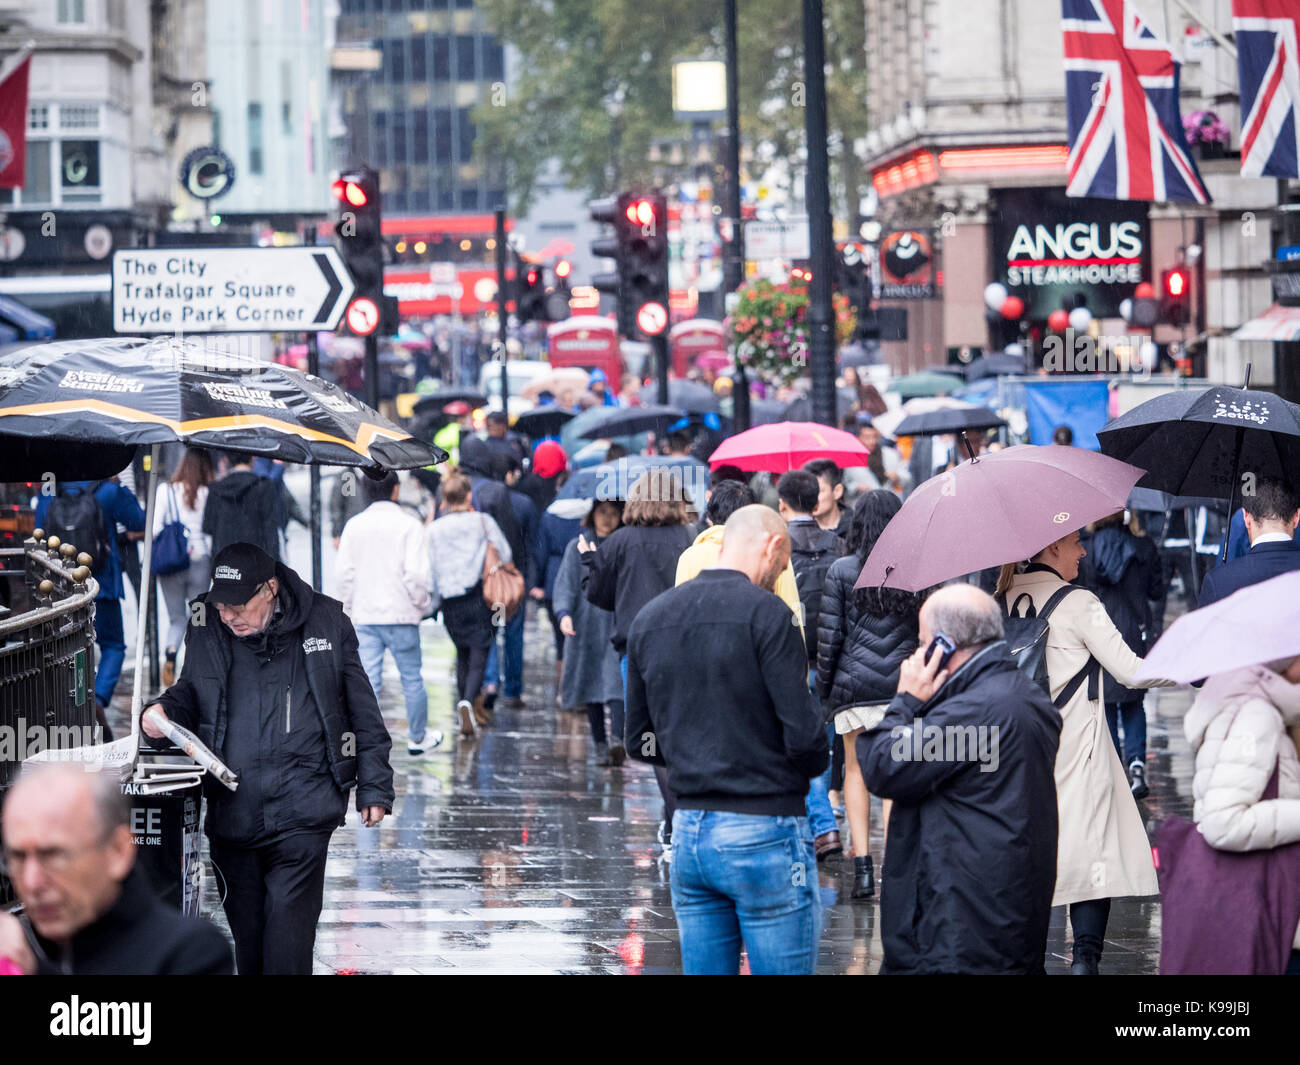 London in the Rain - tourists and workers brave the rain near London's Leicester Square in Soho - Stock Image